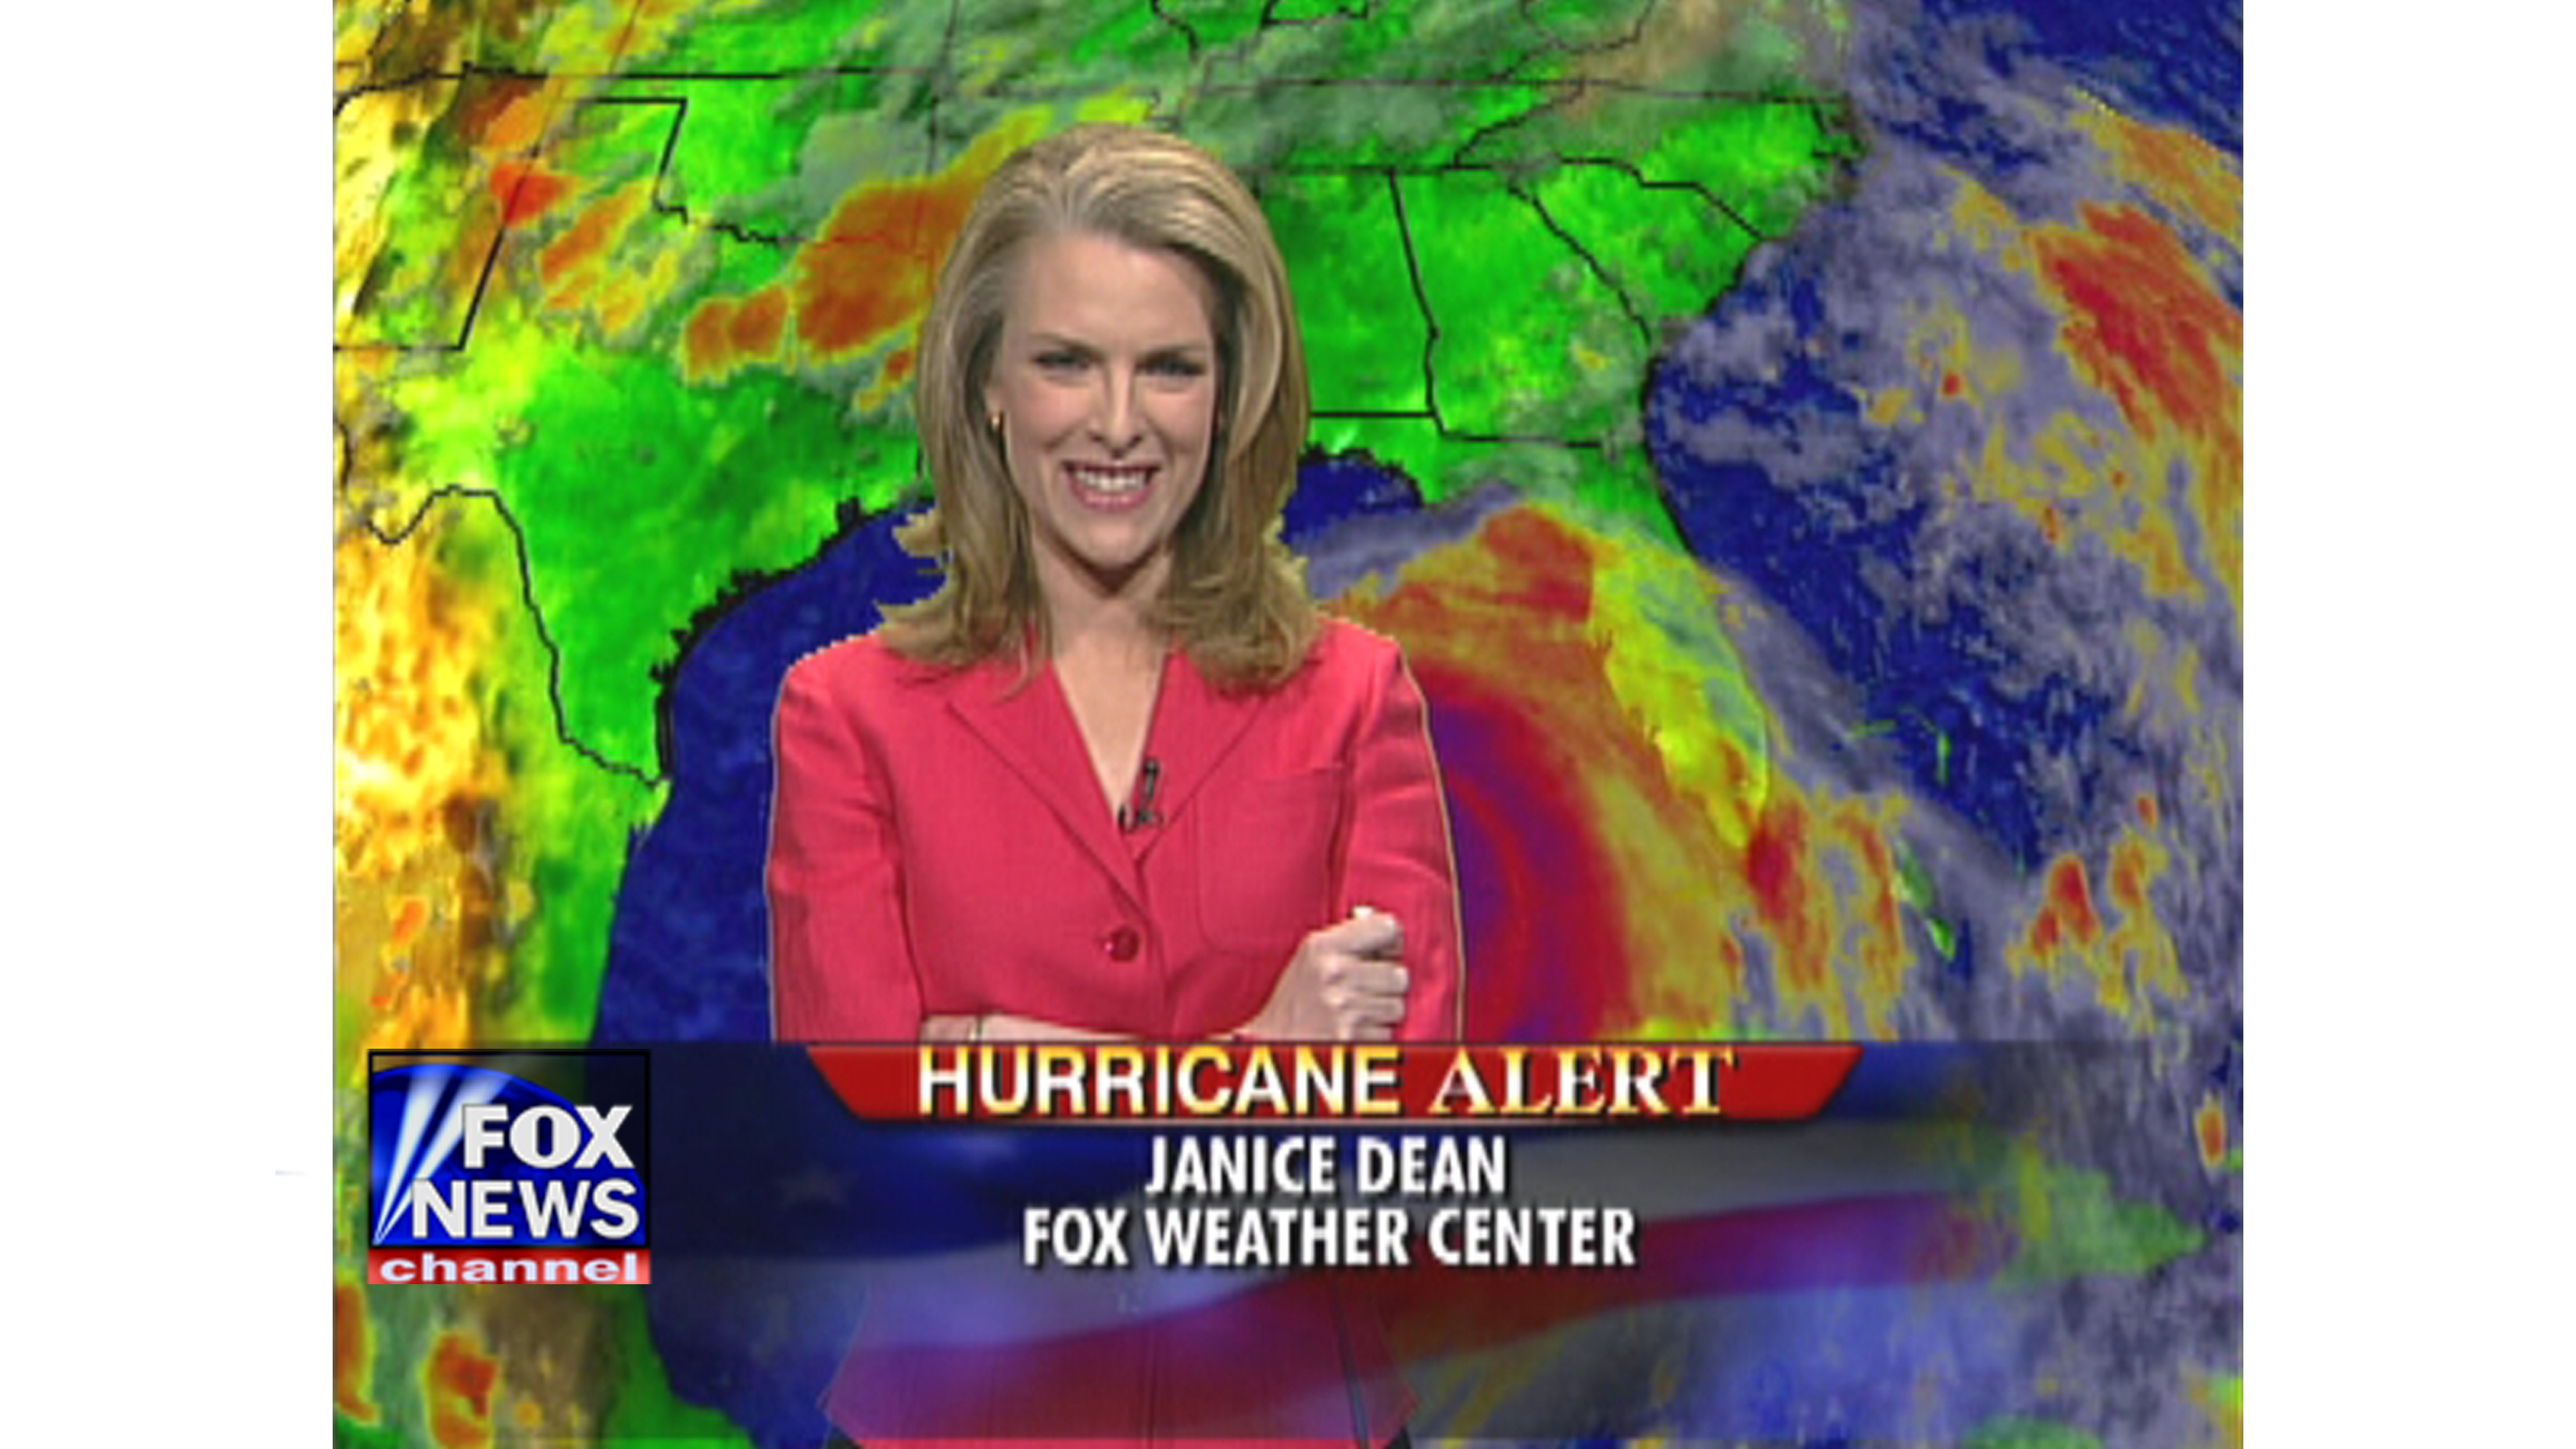 By 2005, Fox News Channel's meteorologist Janice Dean had worked her